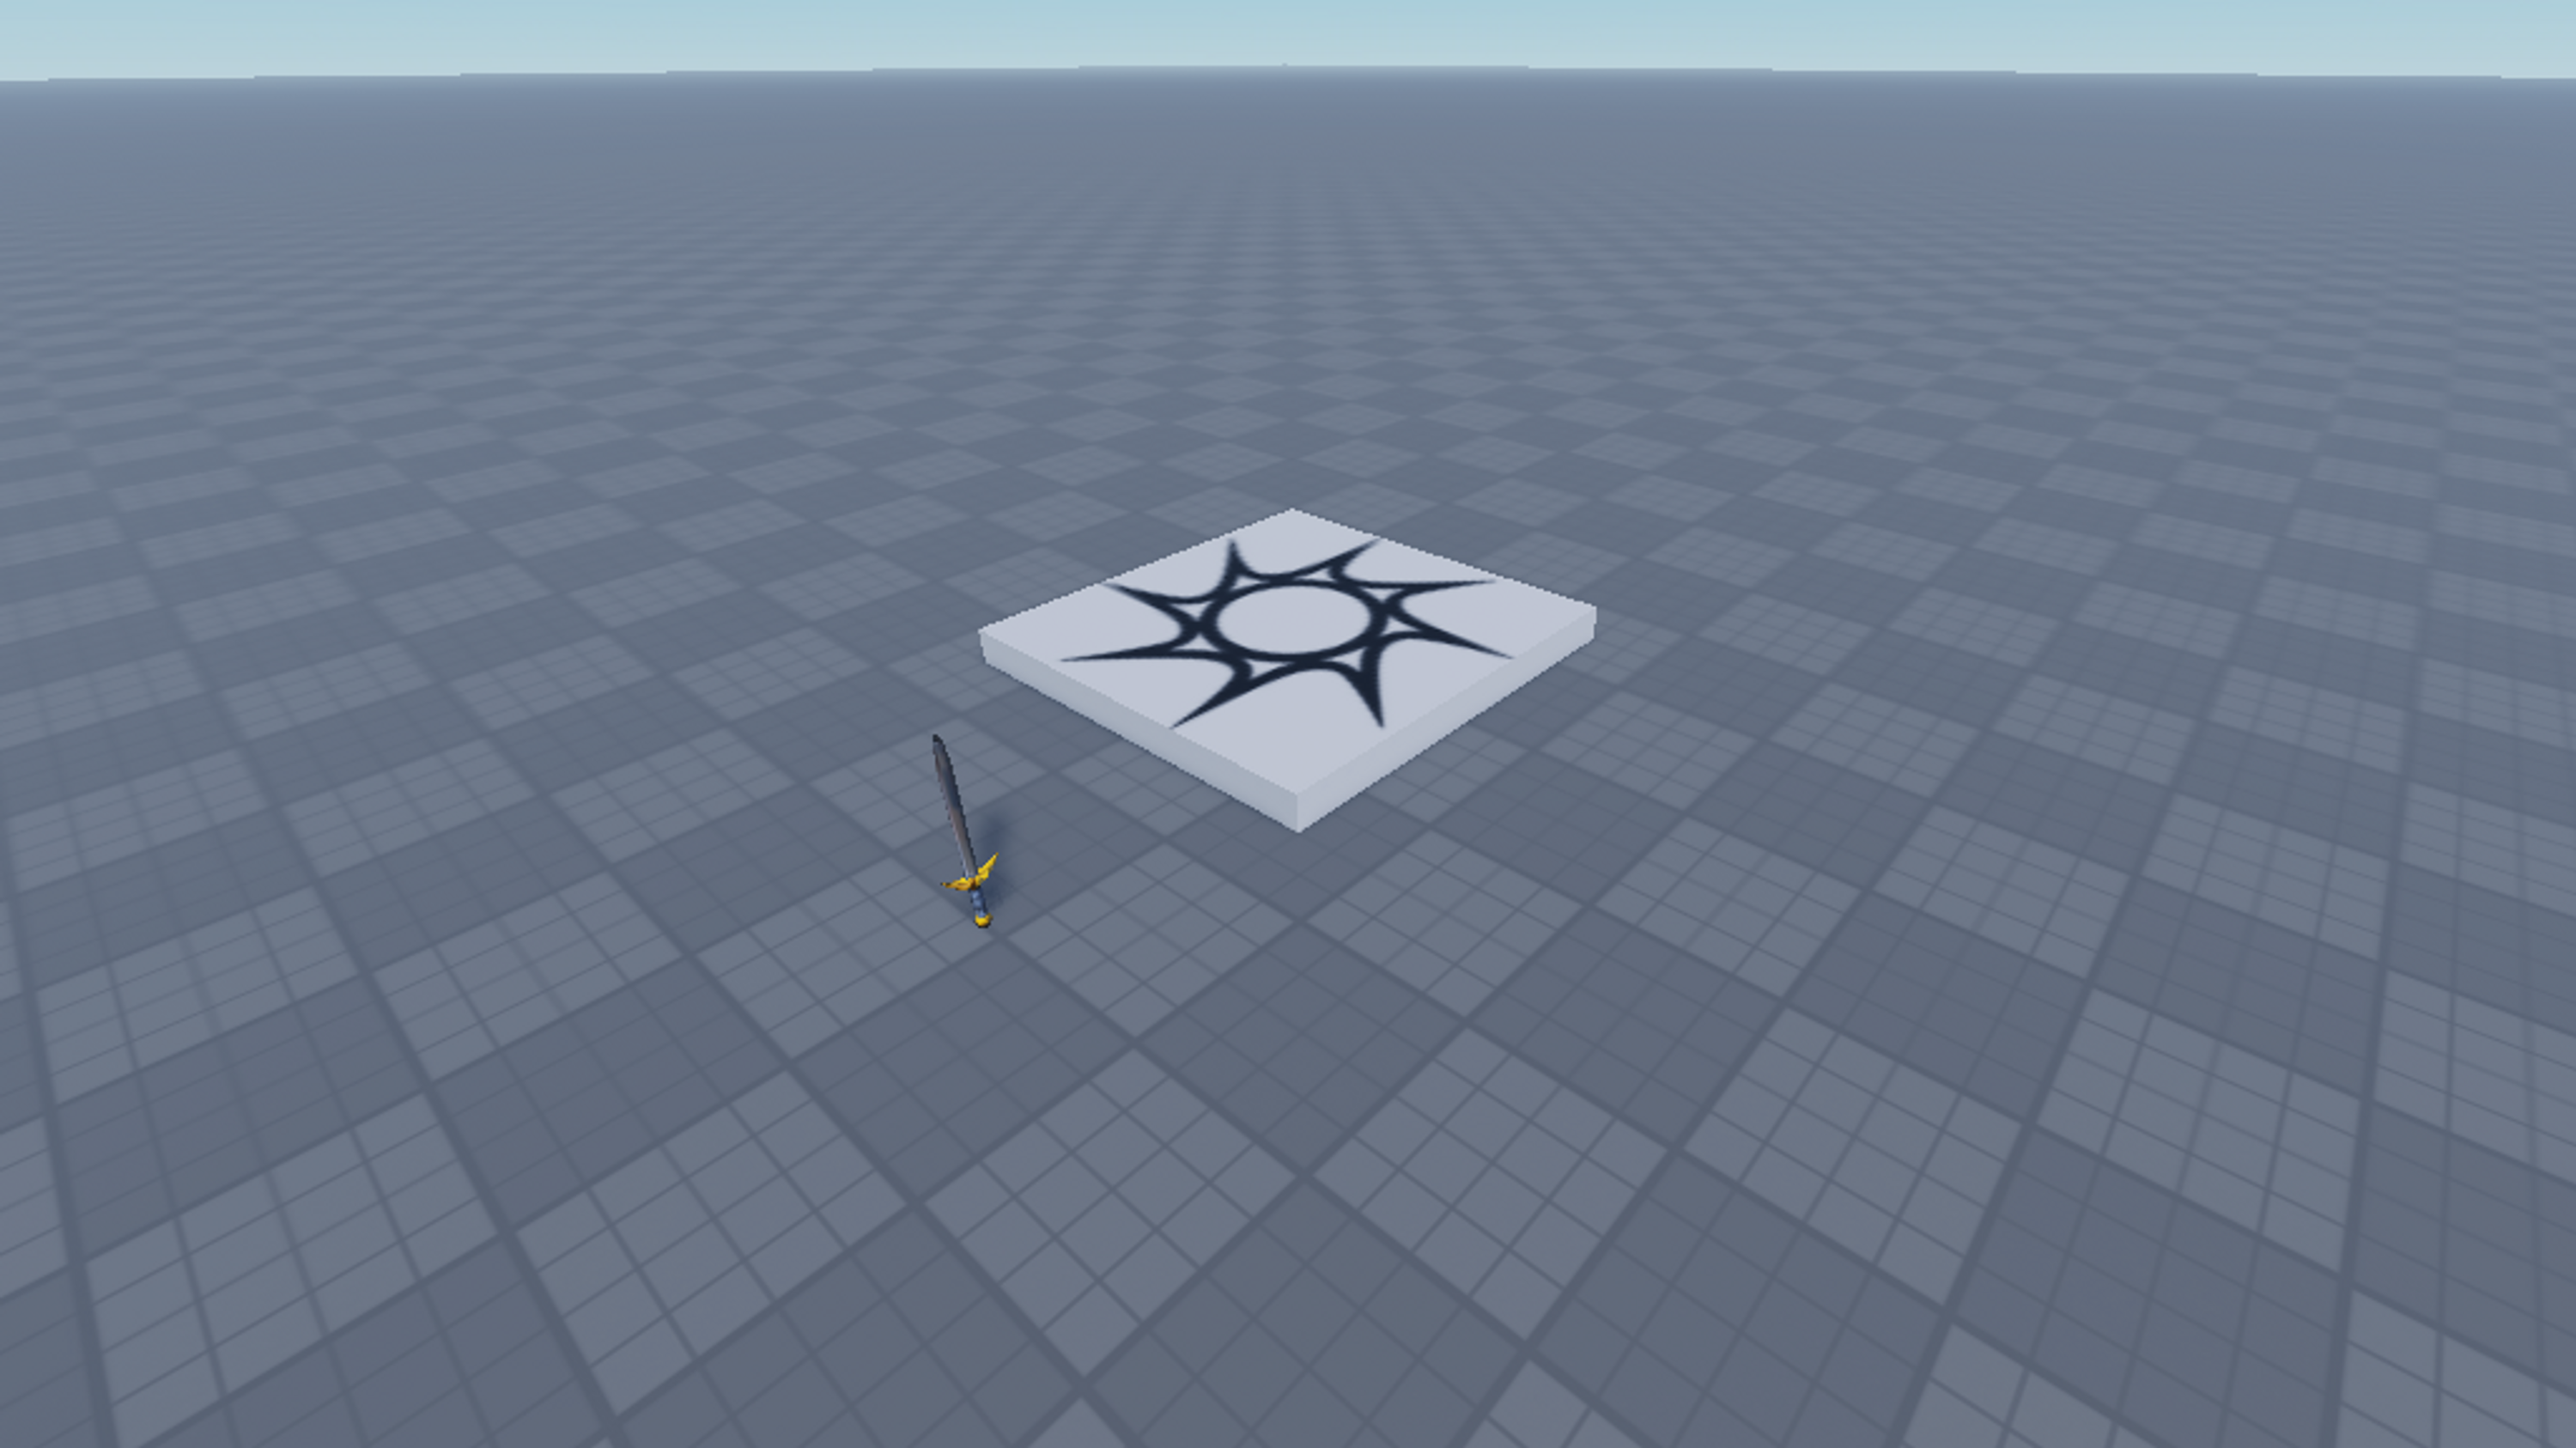 My test world, which includes a grey tiled baseplate stretching to the horizon and a sword.